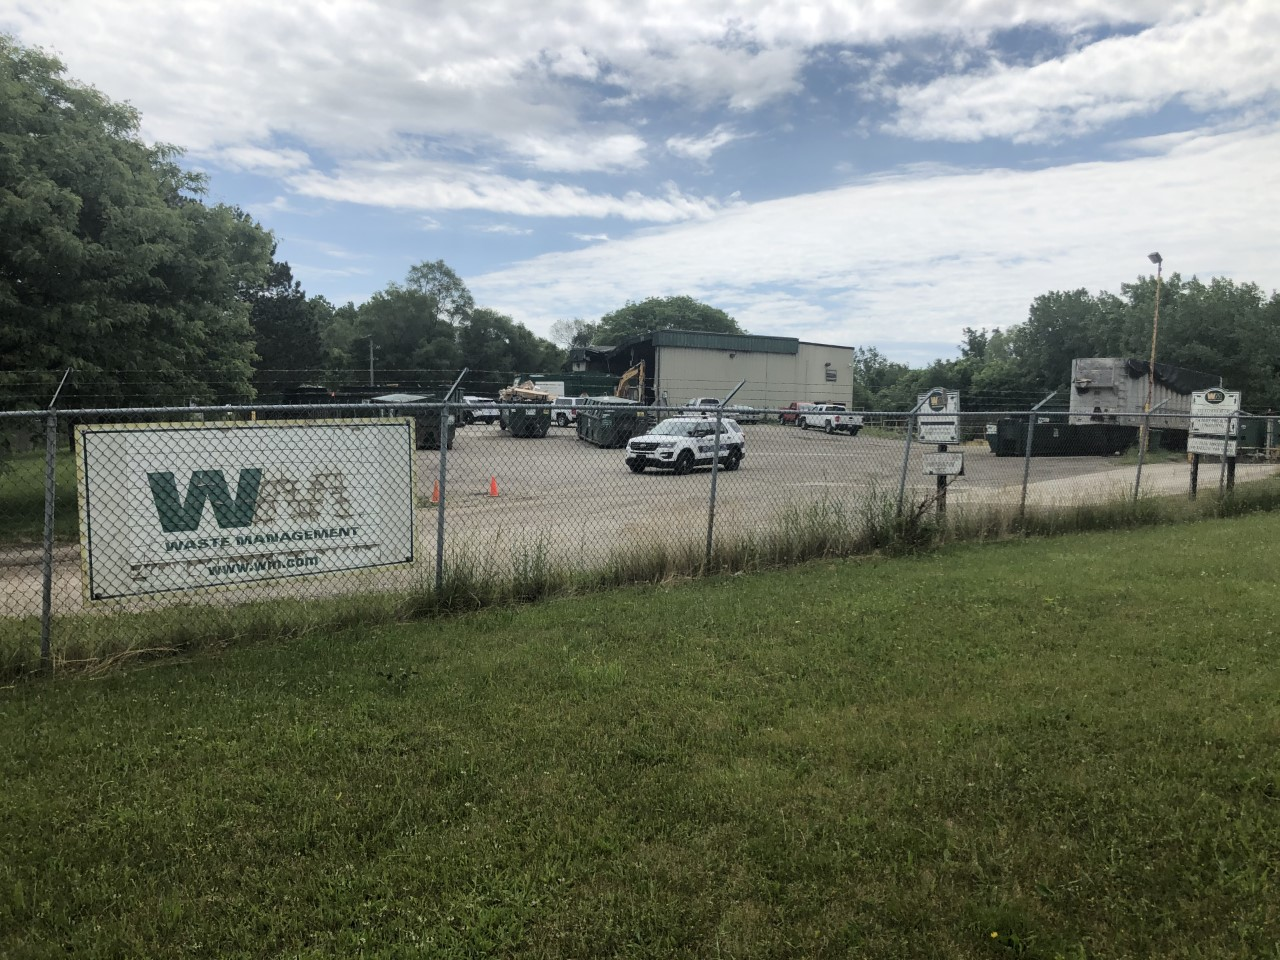 The site where a body was found in a garbage truck in Williamston,. (June 12 2020)